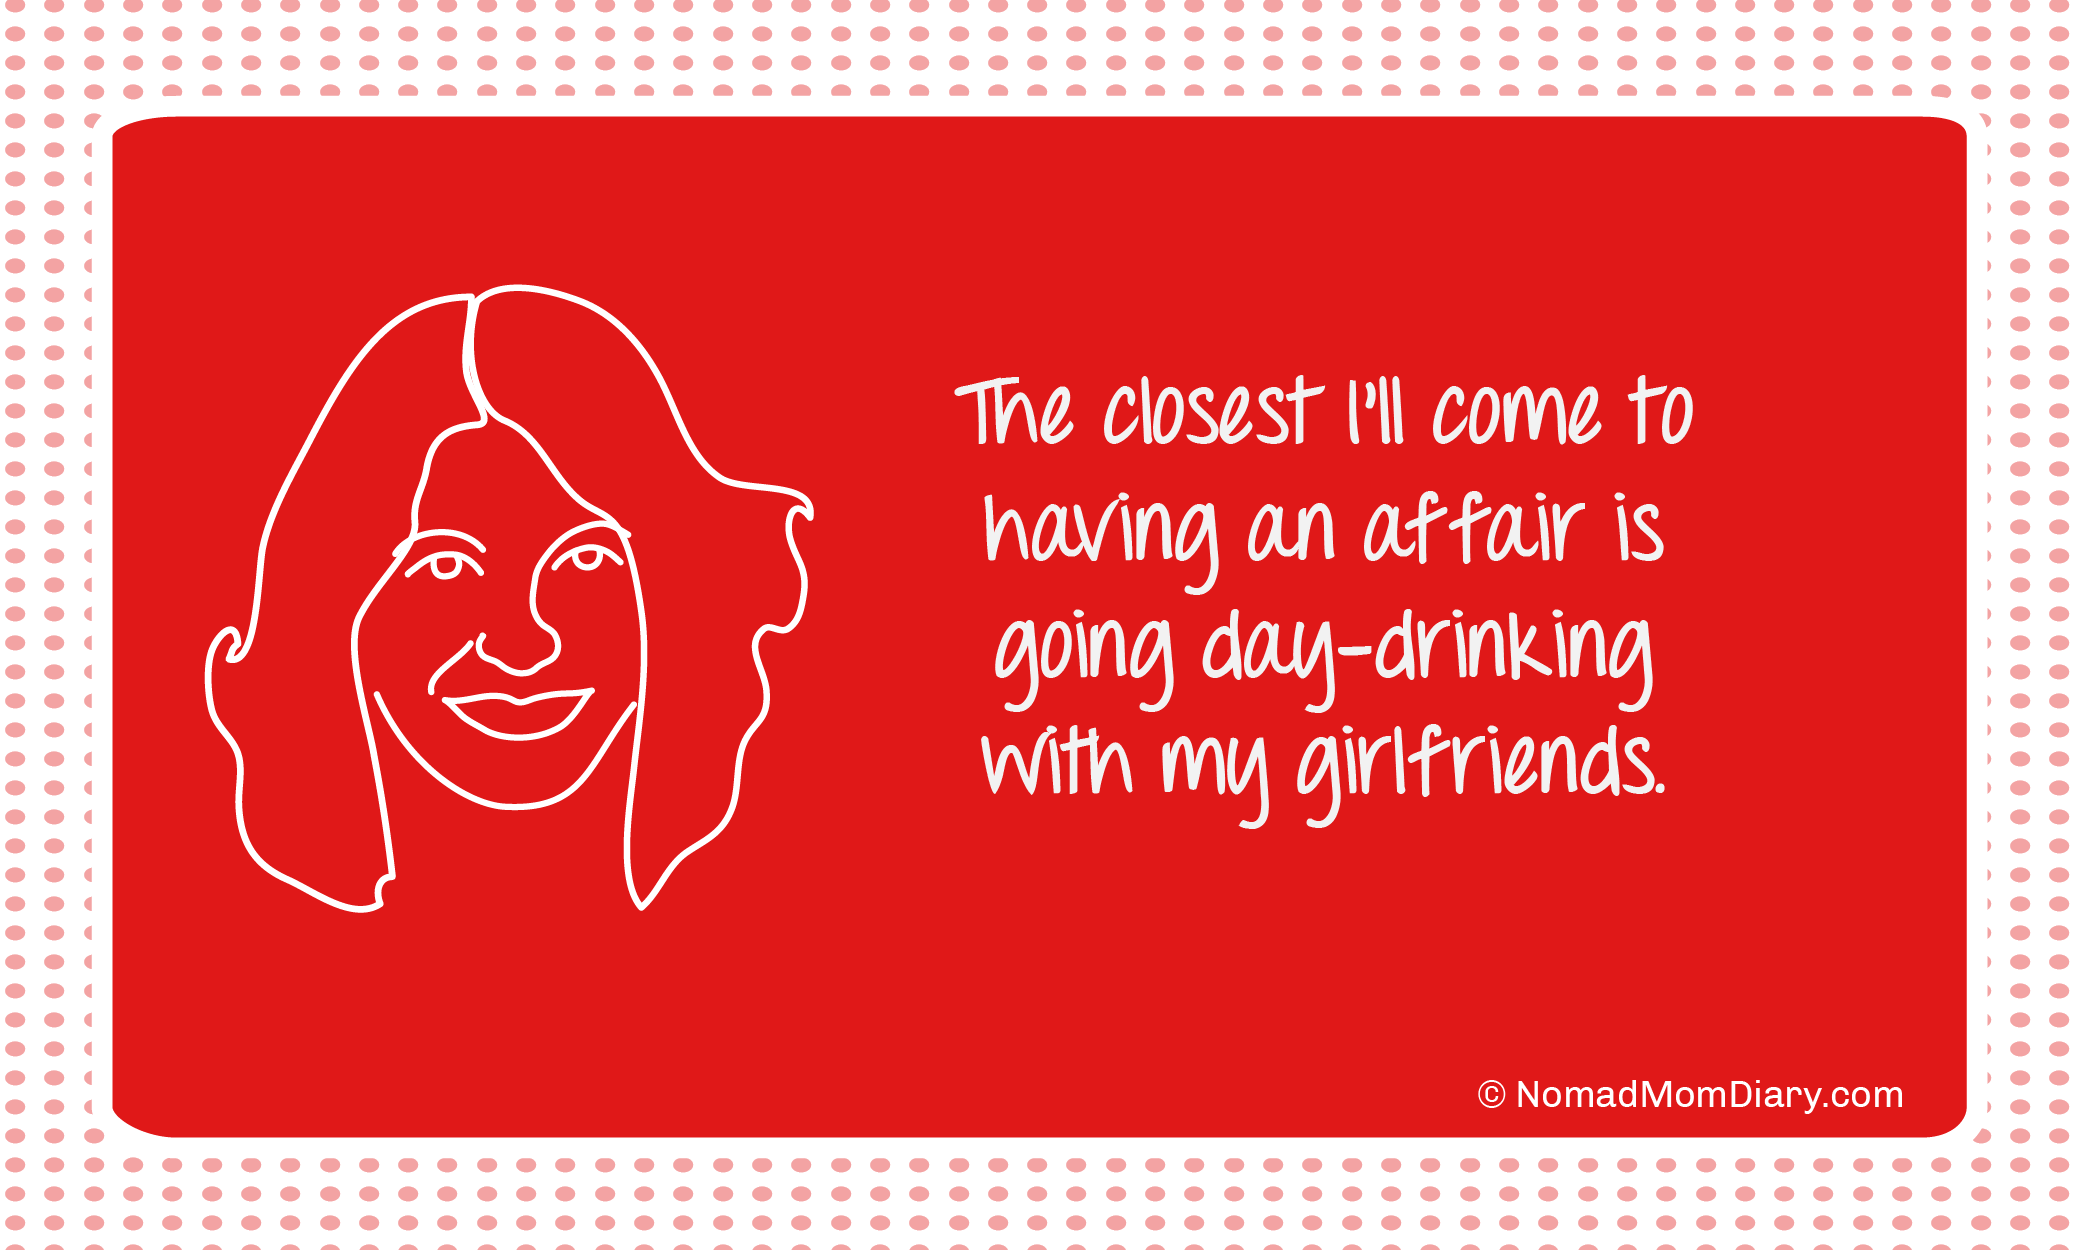 An affair - only with my day-drinking girlfriends